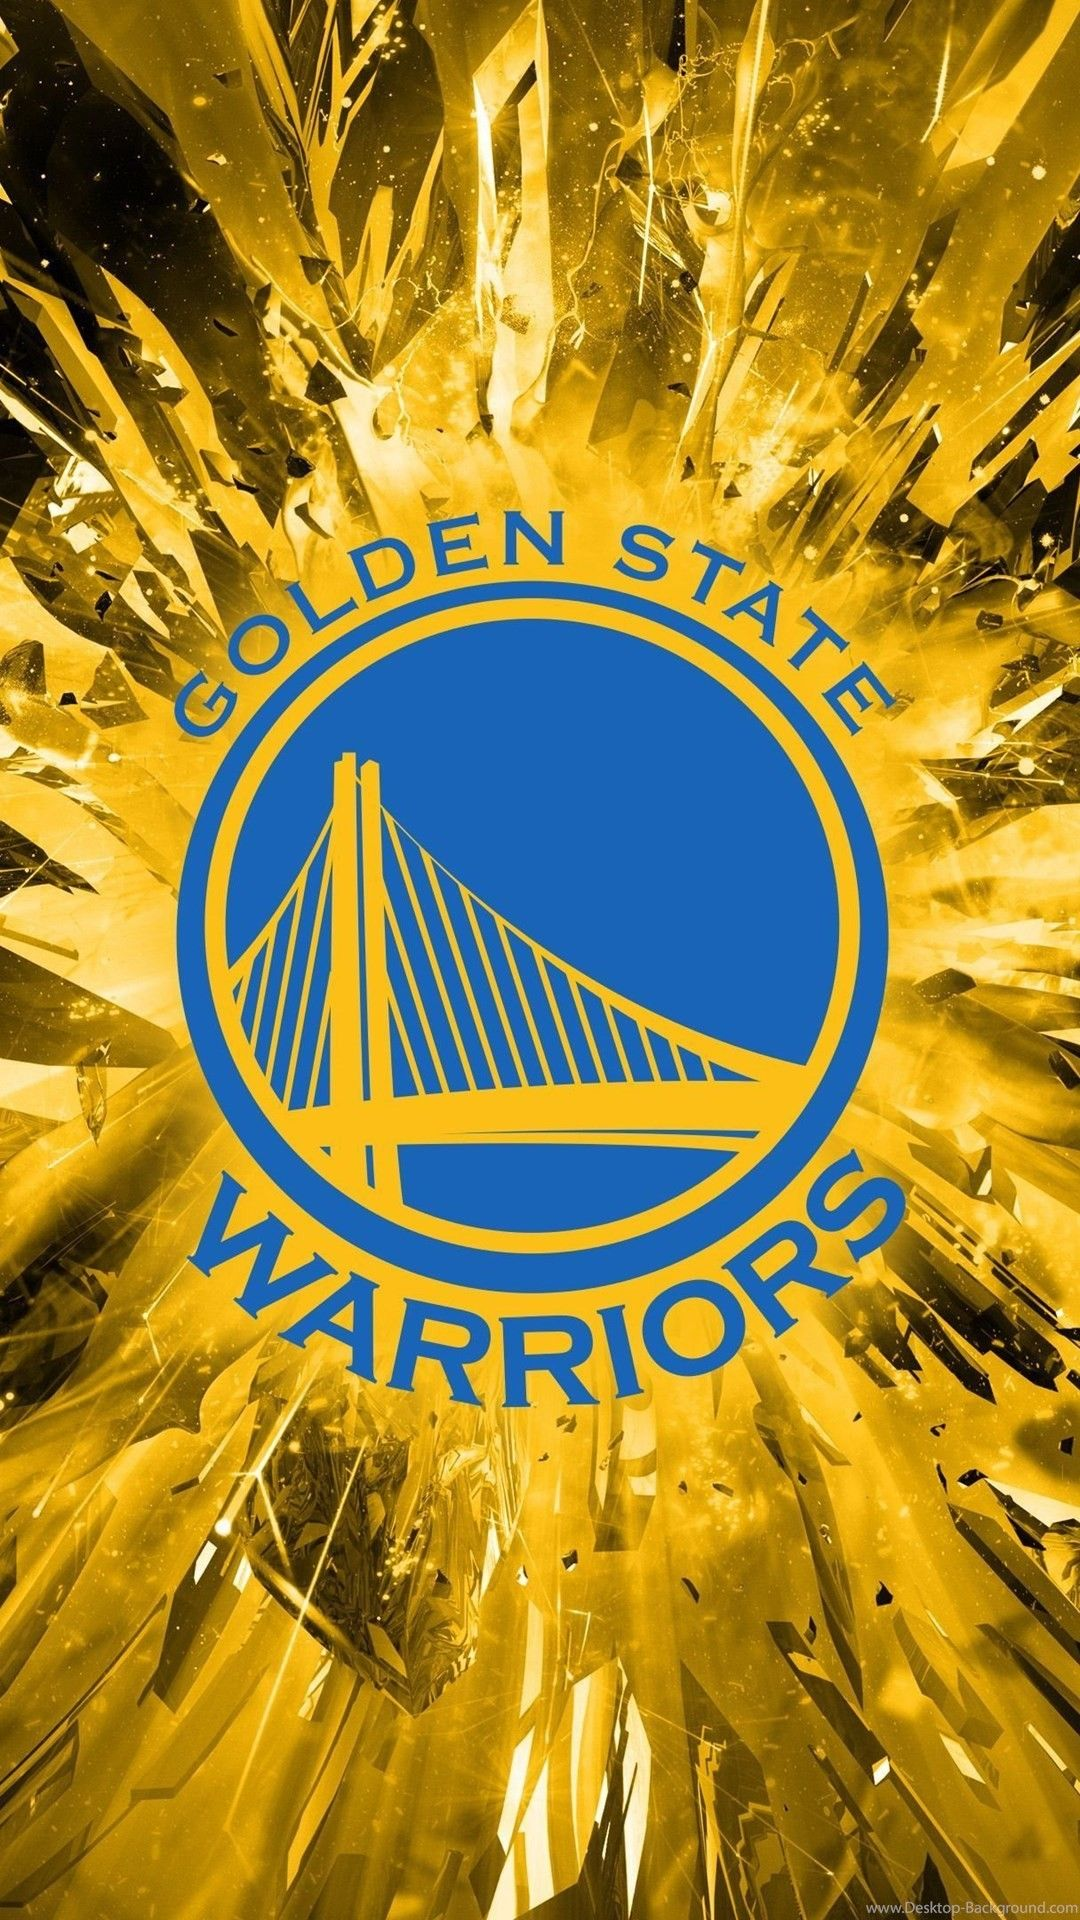 Cool Golden State Warrior Wallpaper Android Download Golden State Warriors Wallpaper Warriors Wallpaper Golden State Warriors